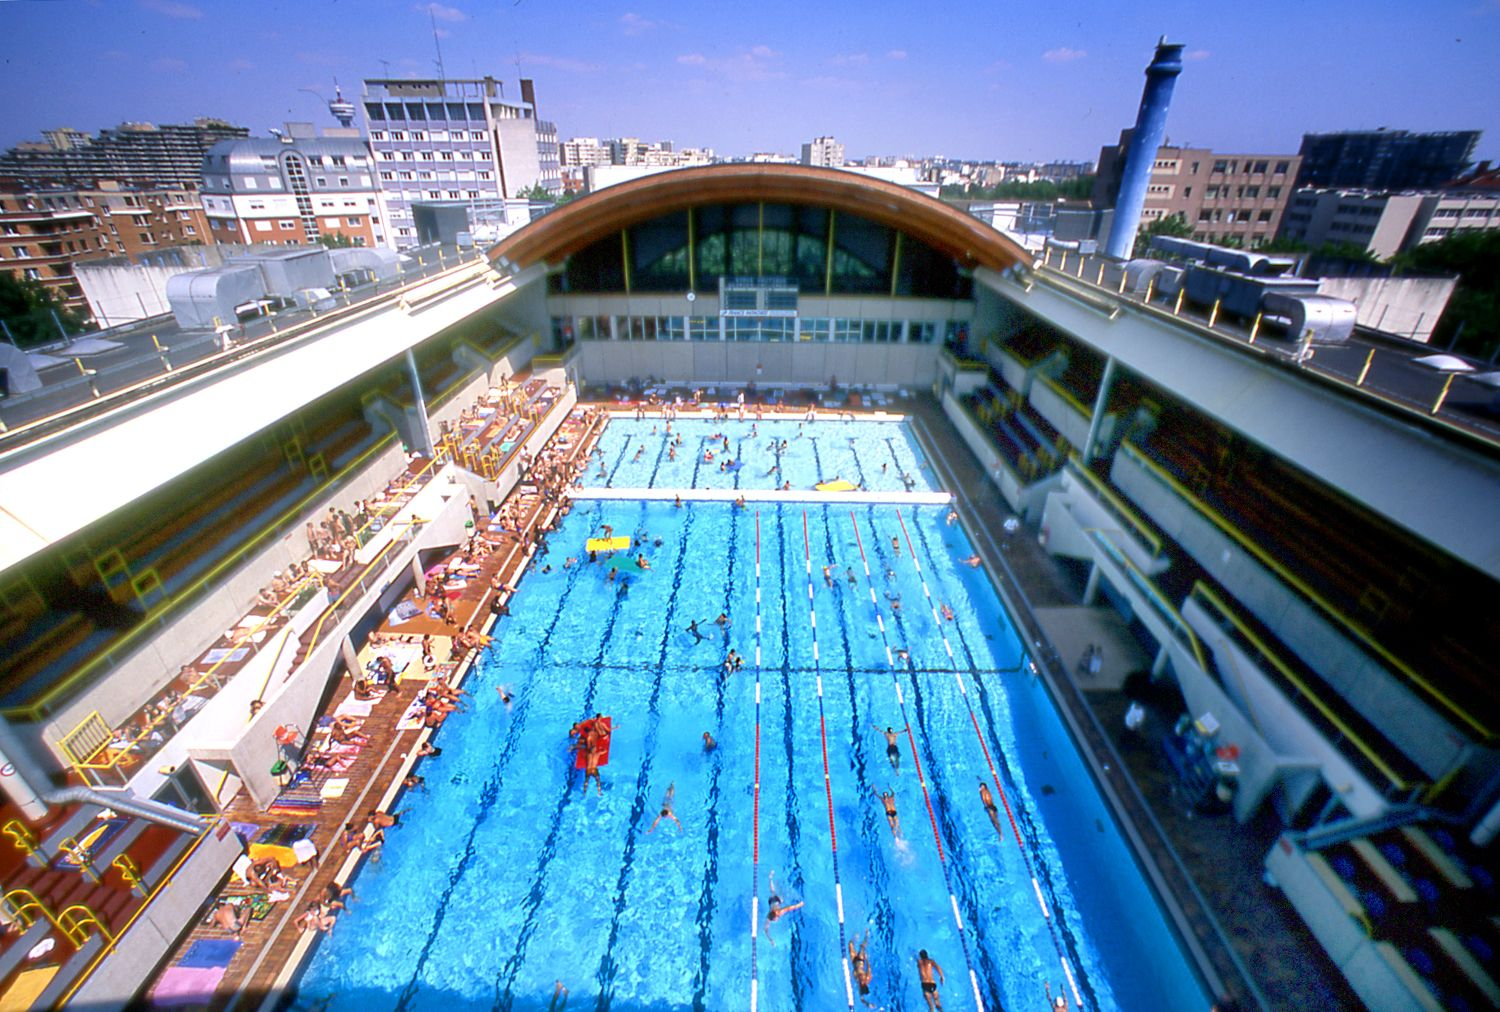 La Piscine Georges Vallerey Avec Images Piscine Olympique